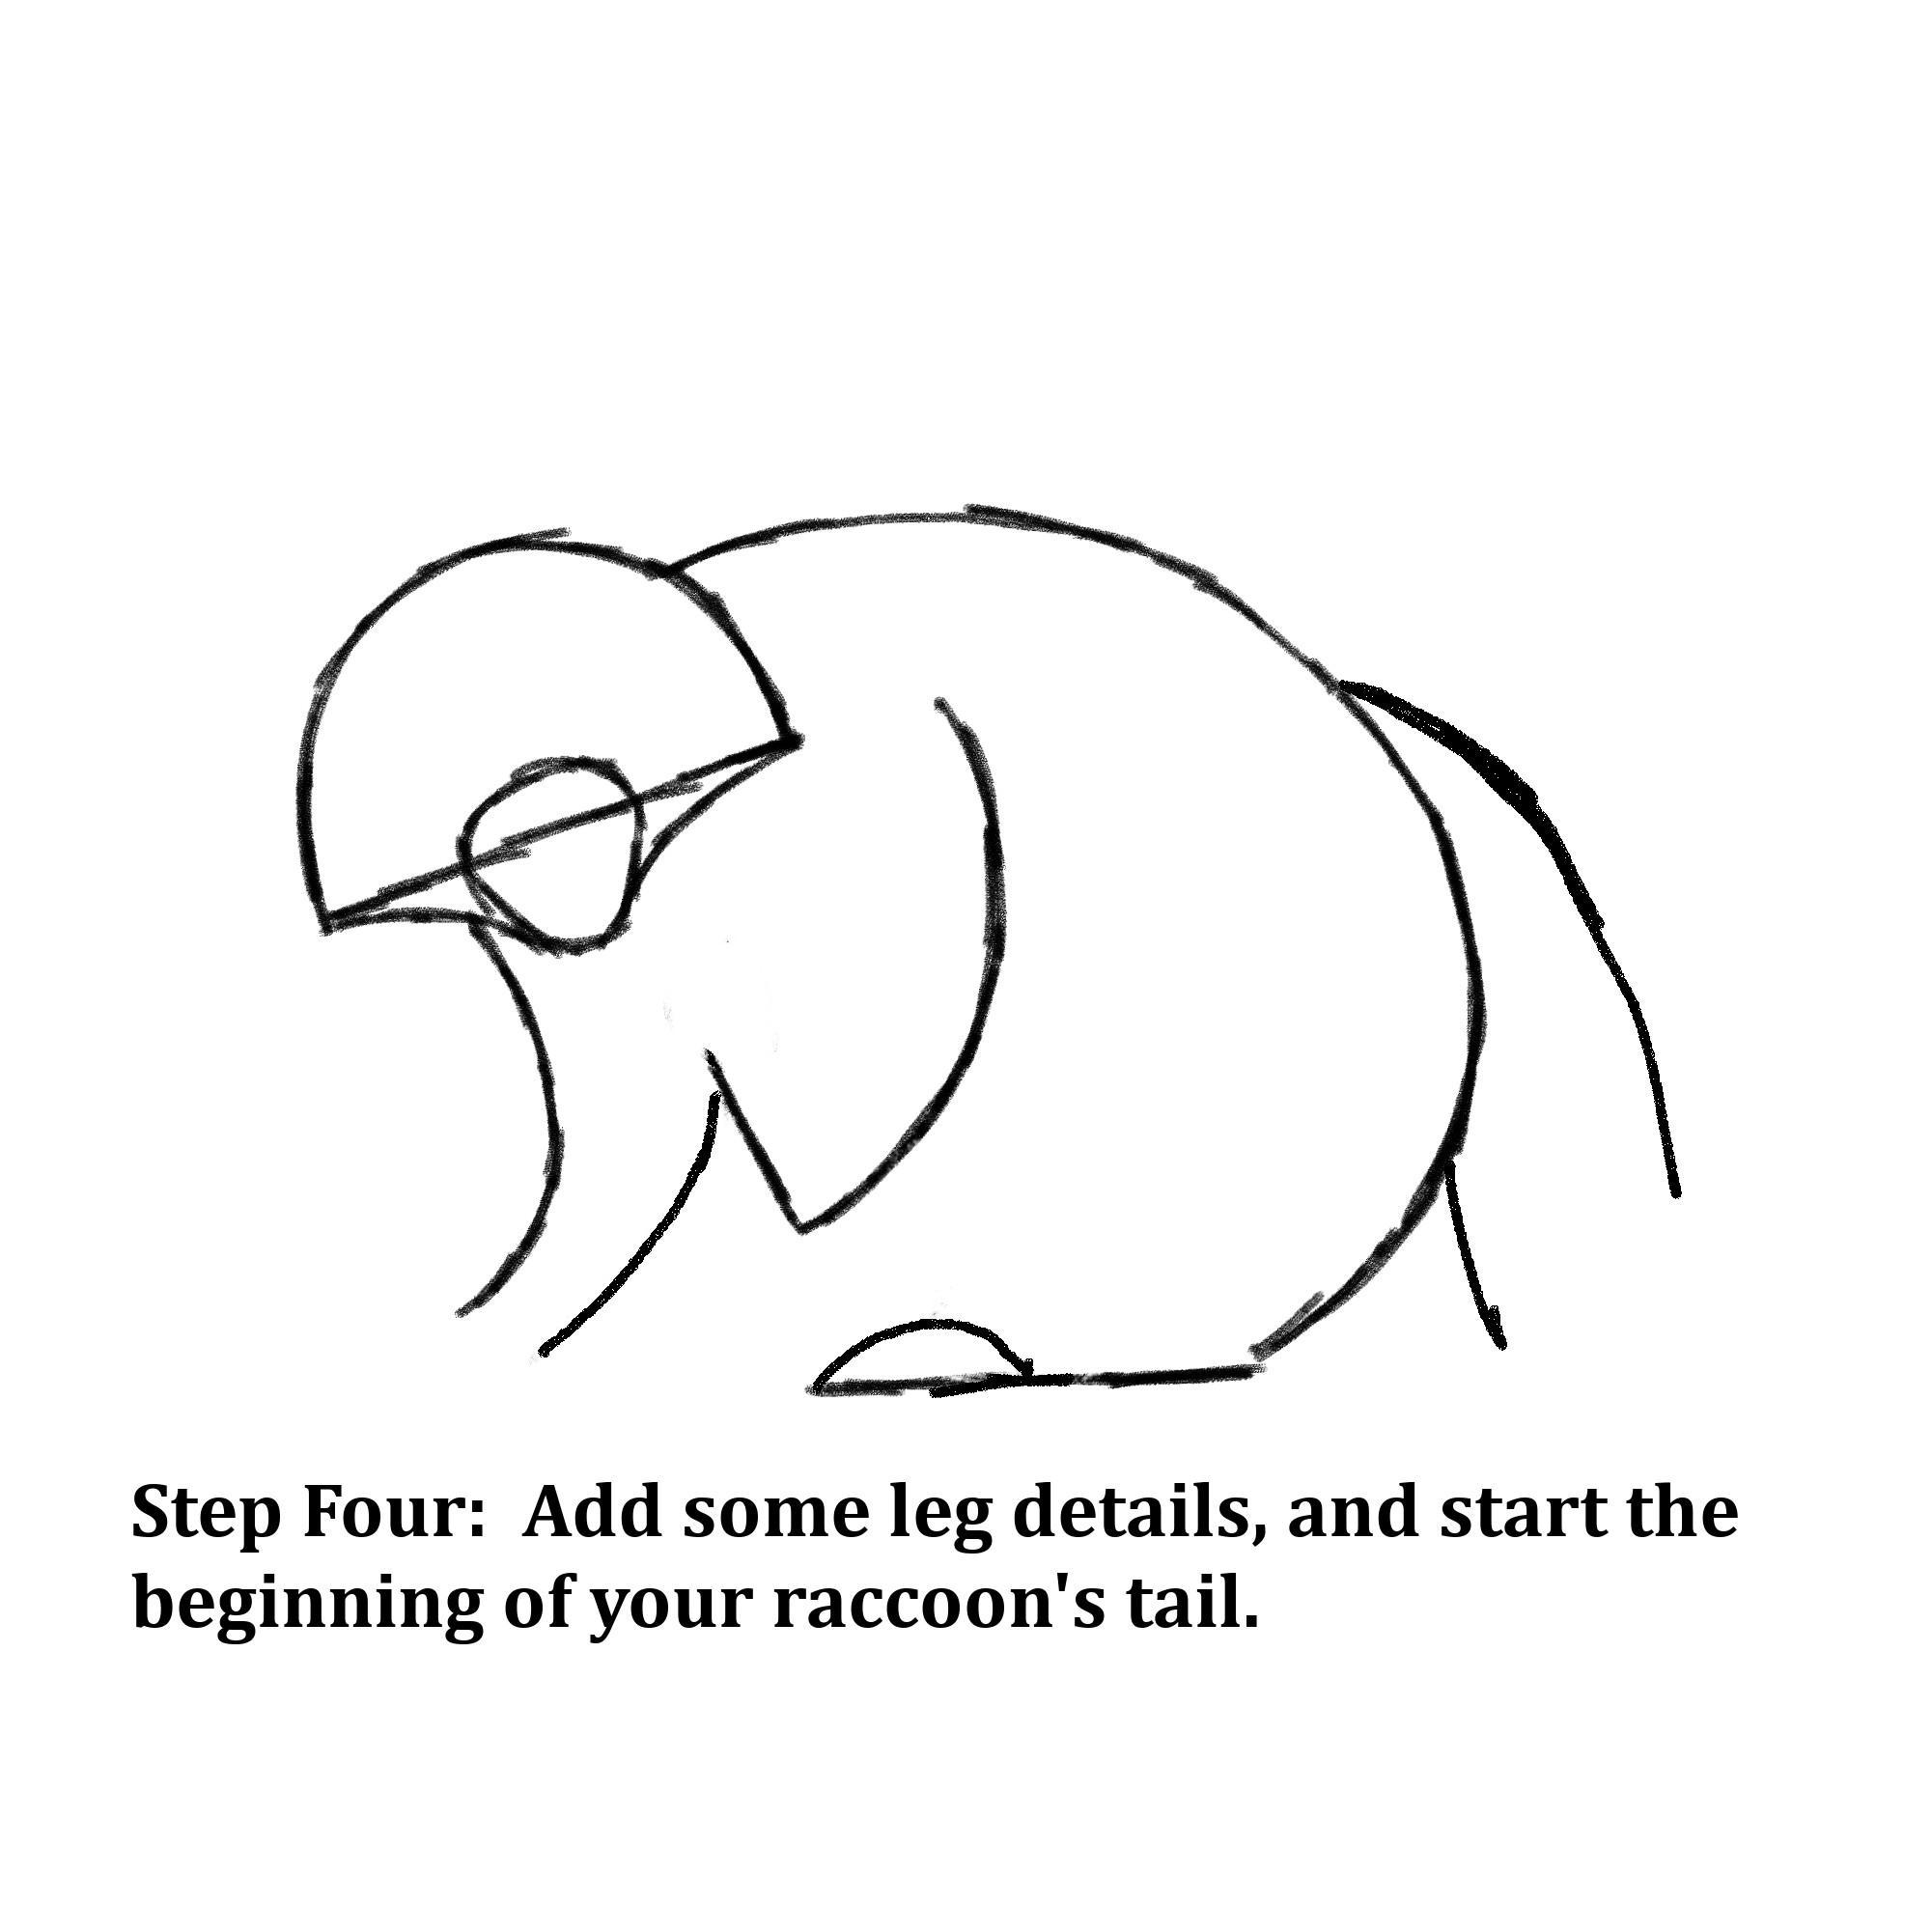 "Drawn shapes with text instructions: ""Step Four: Add some leg details, and start the beginning of your raccoon's tail."""